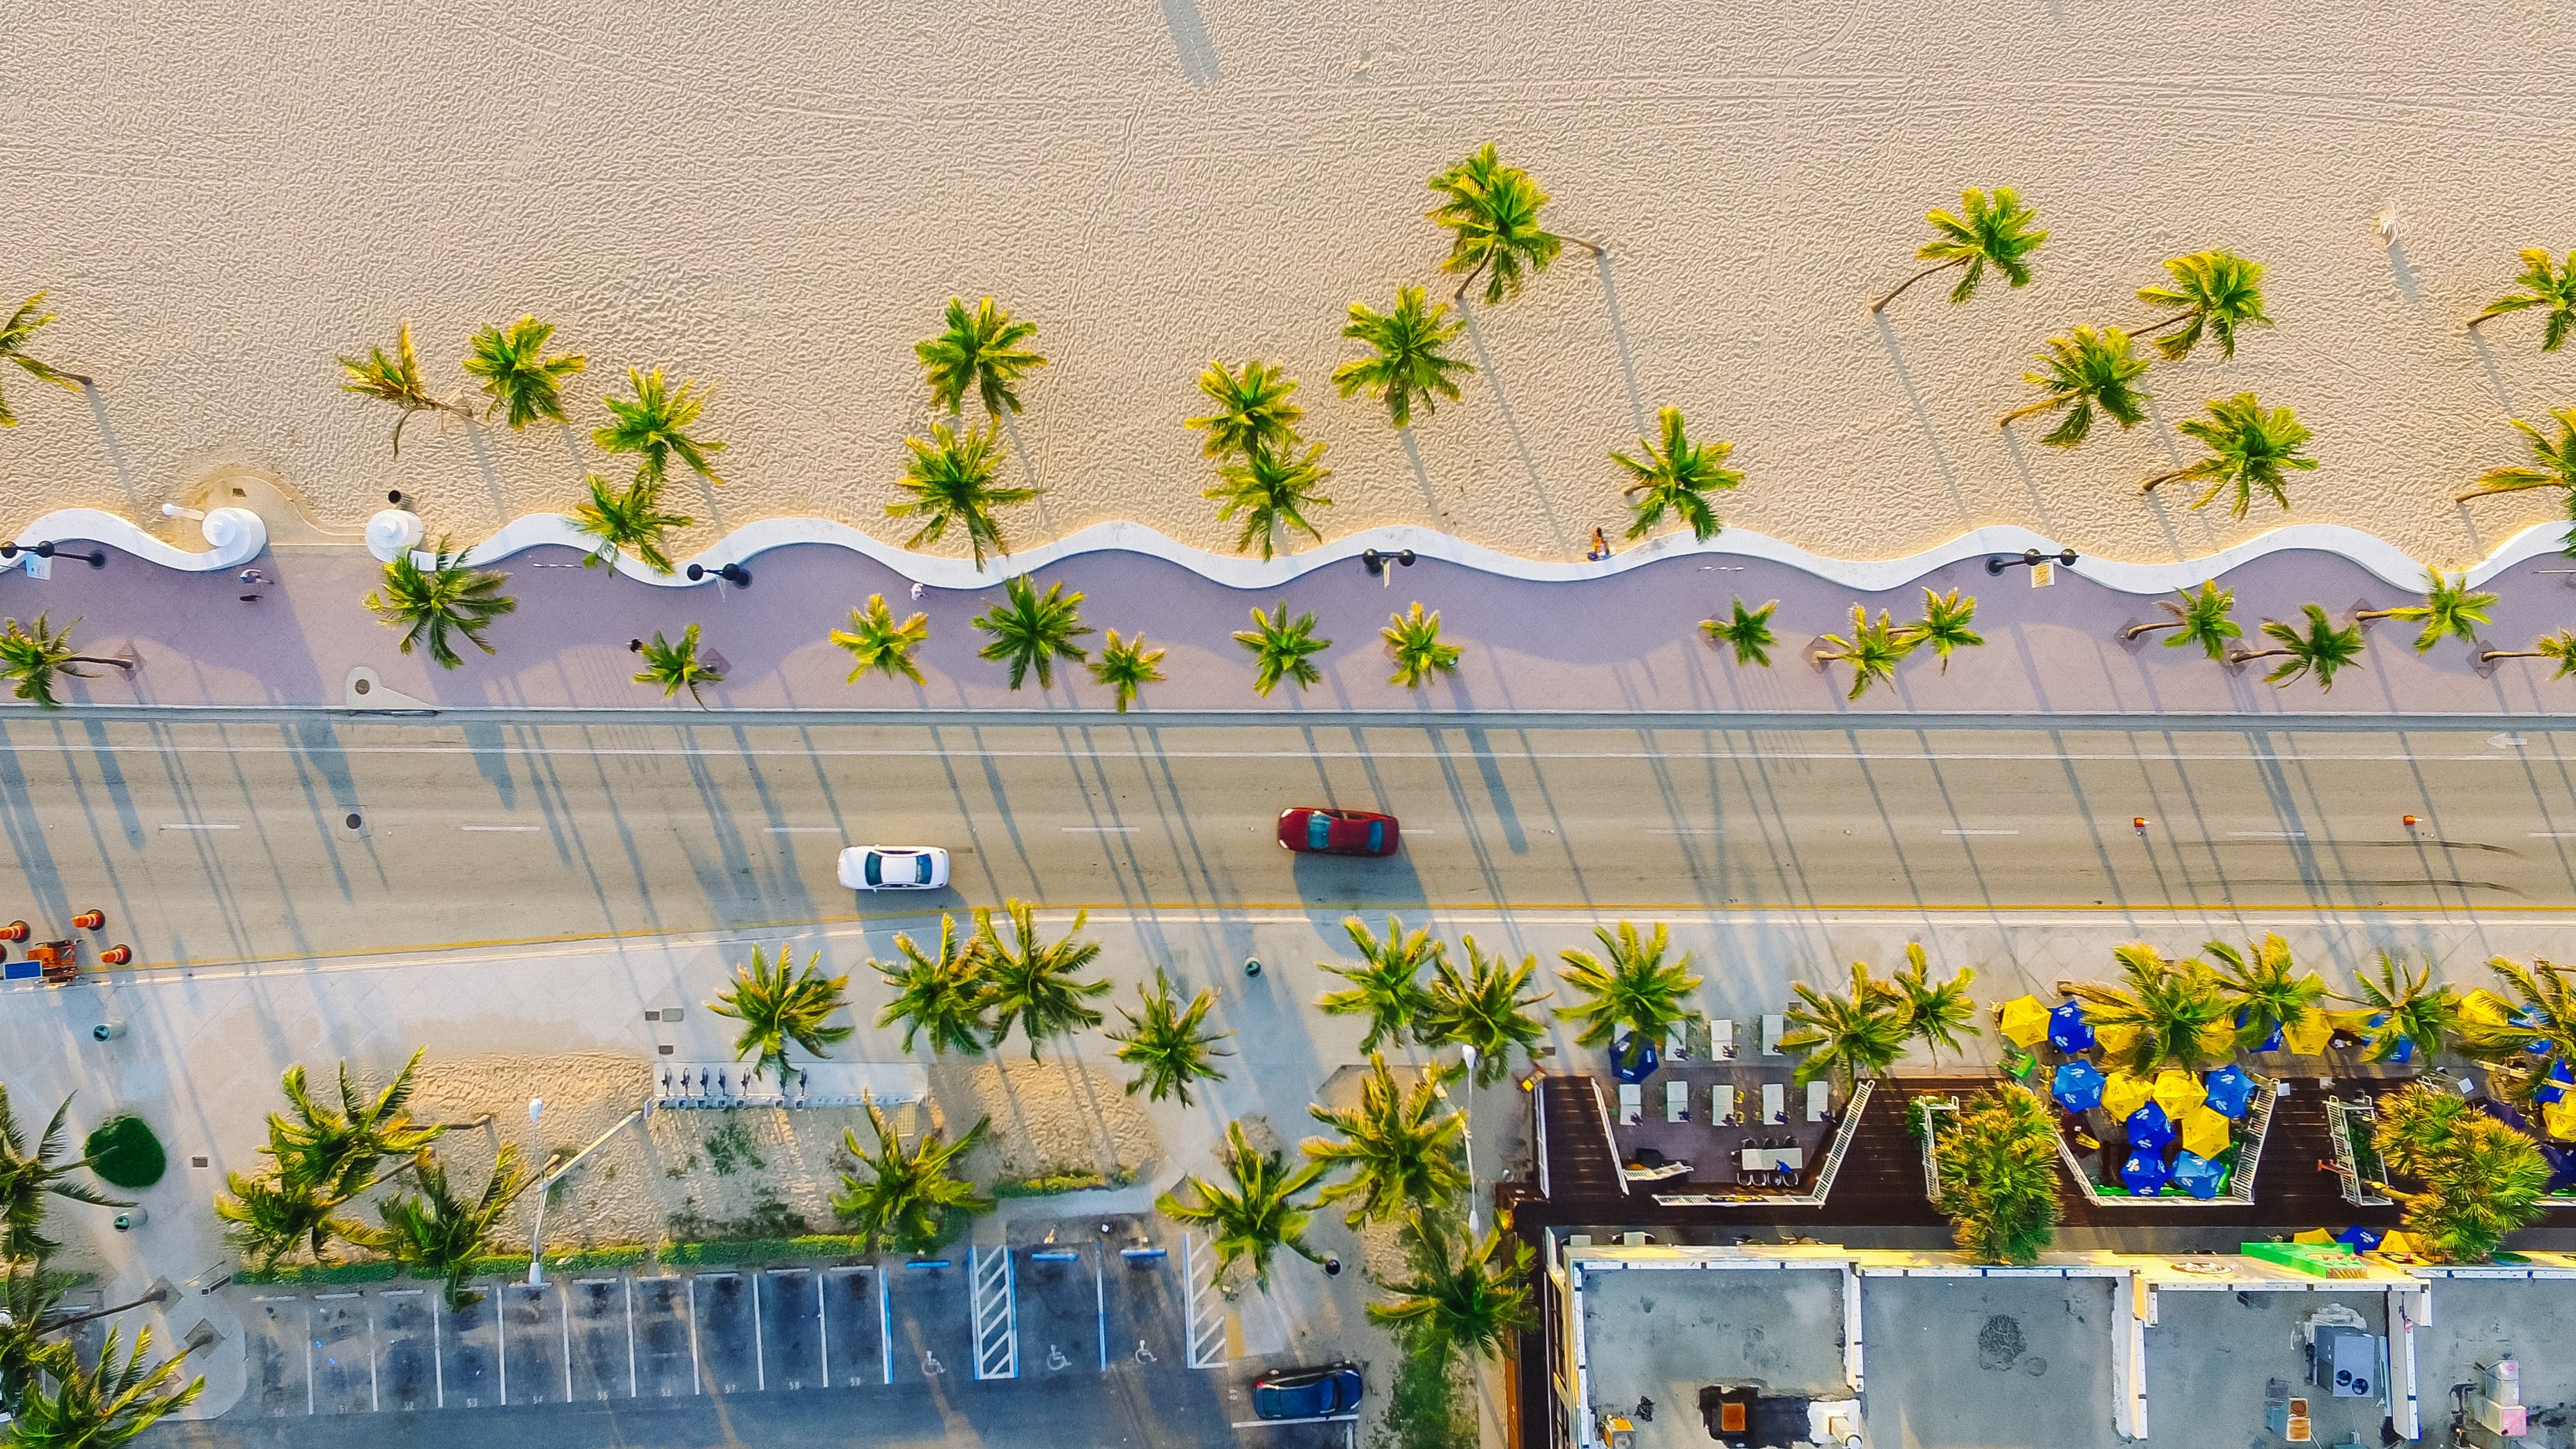 Drone view of a coastline road and buildings by the sand beach with palm trees